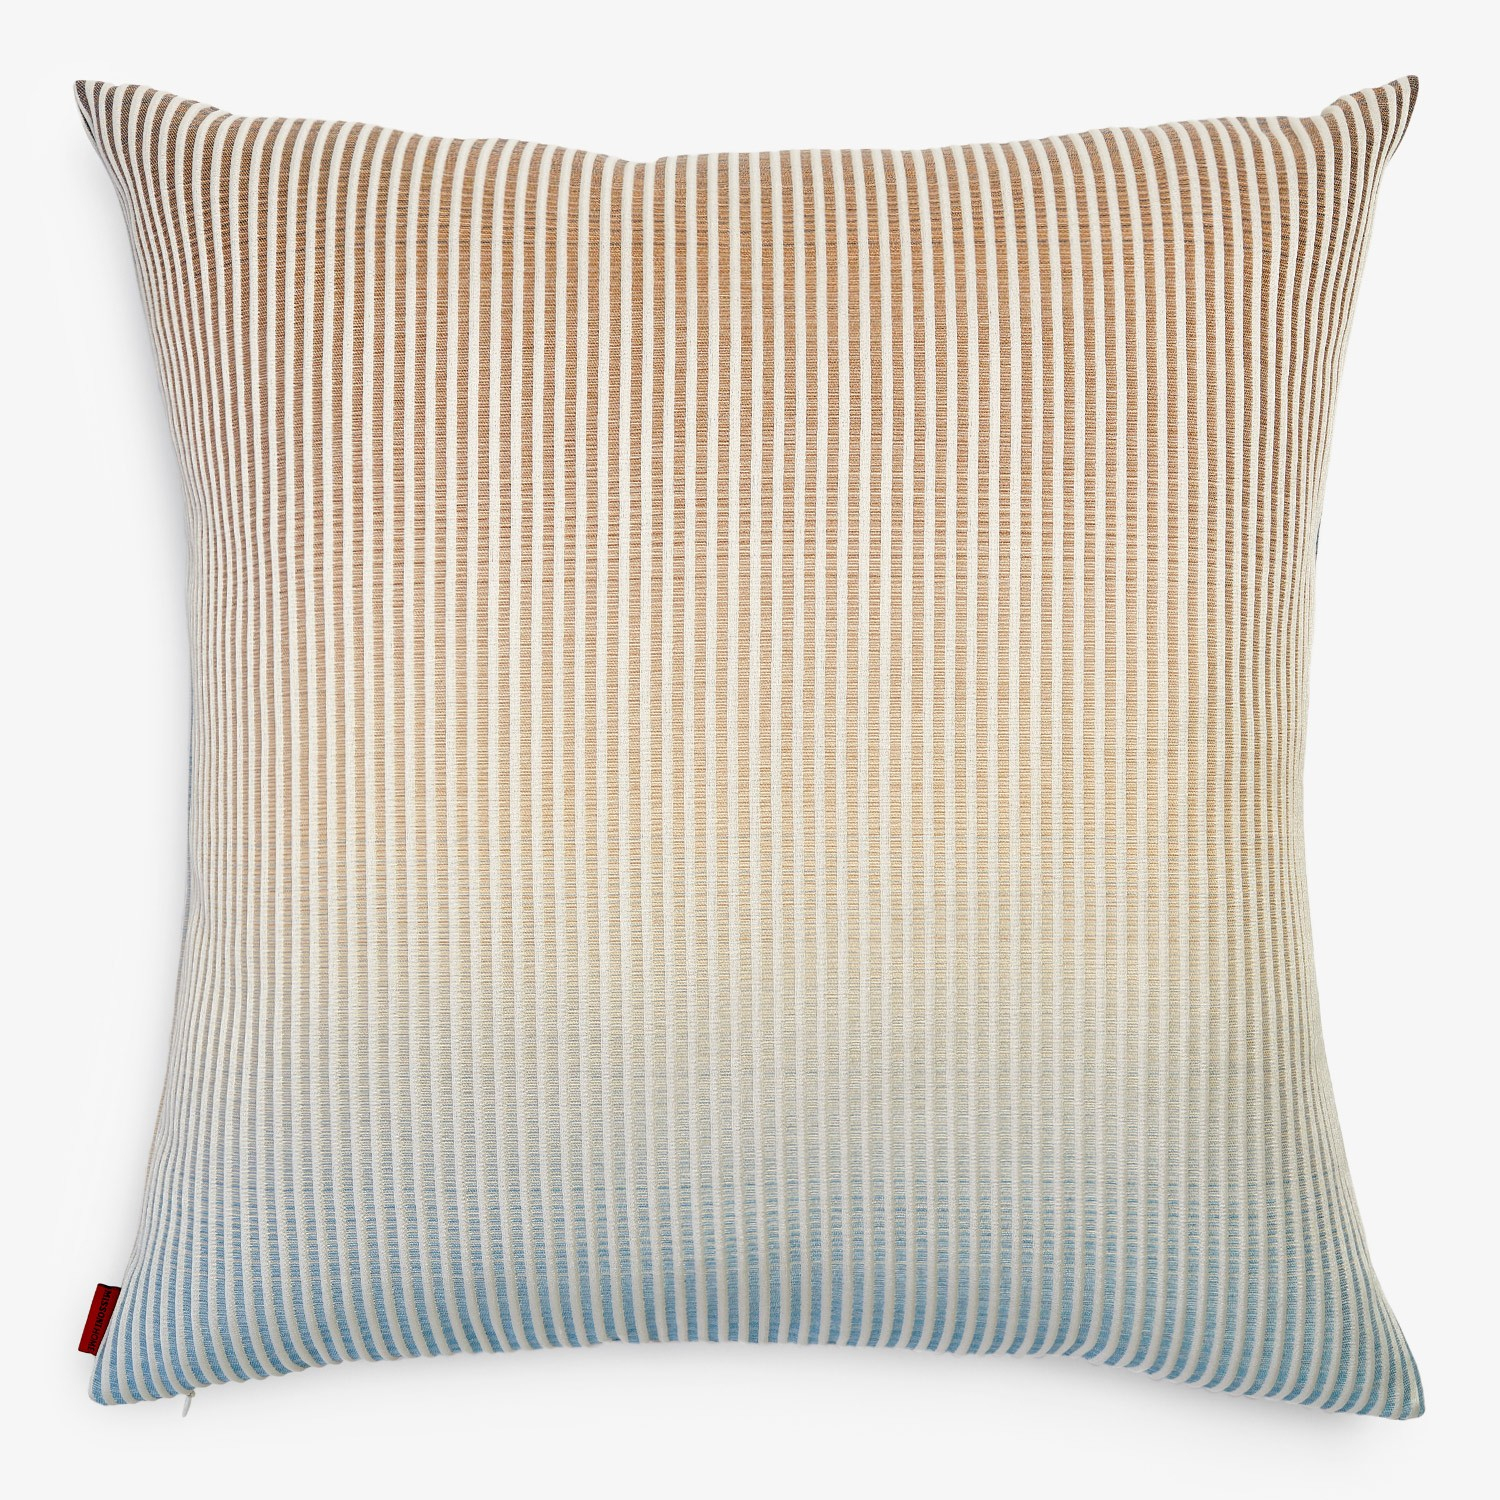 Mossaic Home Decor From Missoni In Nyc At Abc Within Proportions 1500 X